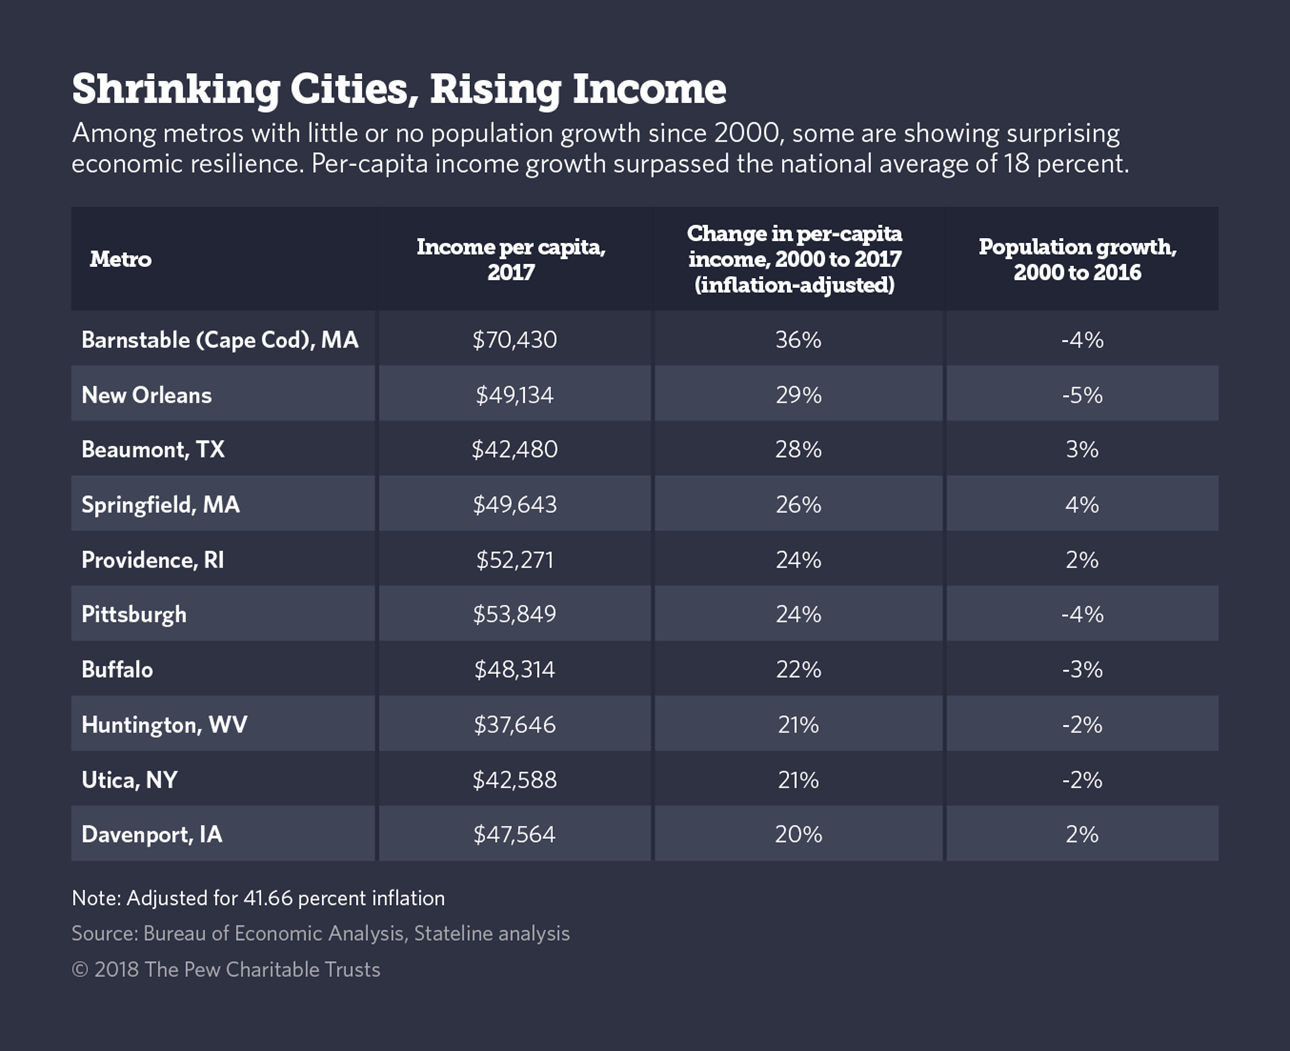 How Some Shrinking Cities Are Thriving in the New Economy